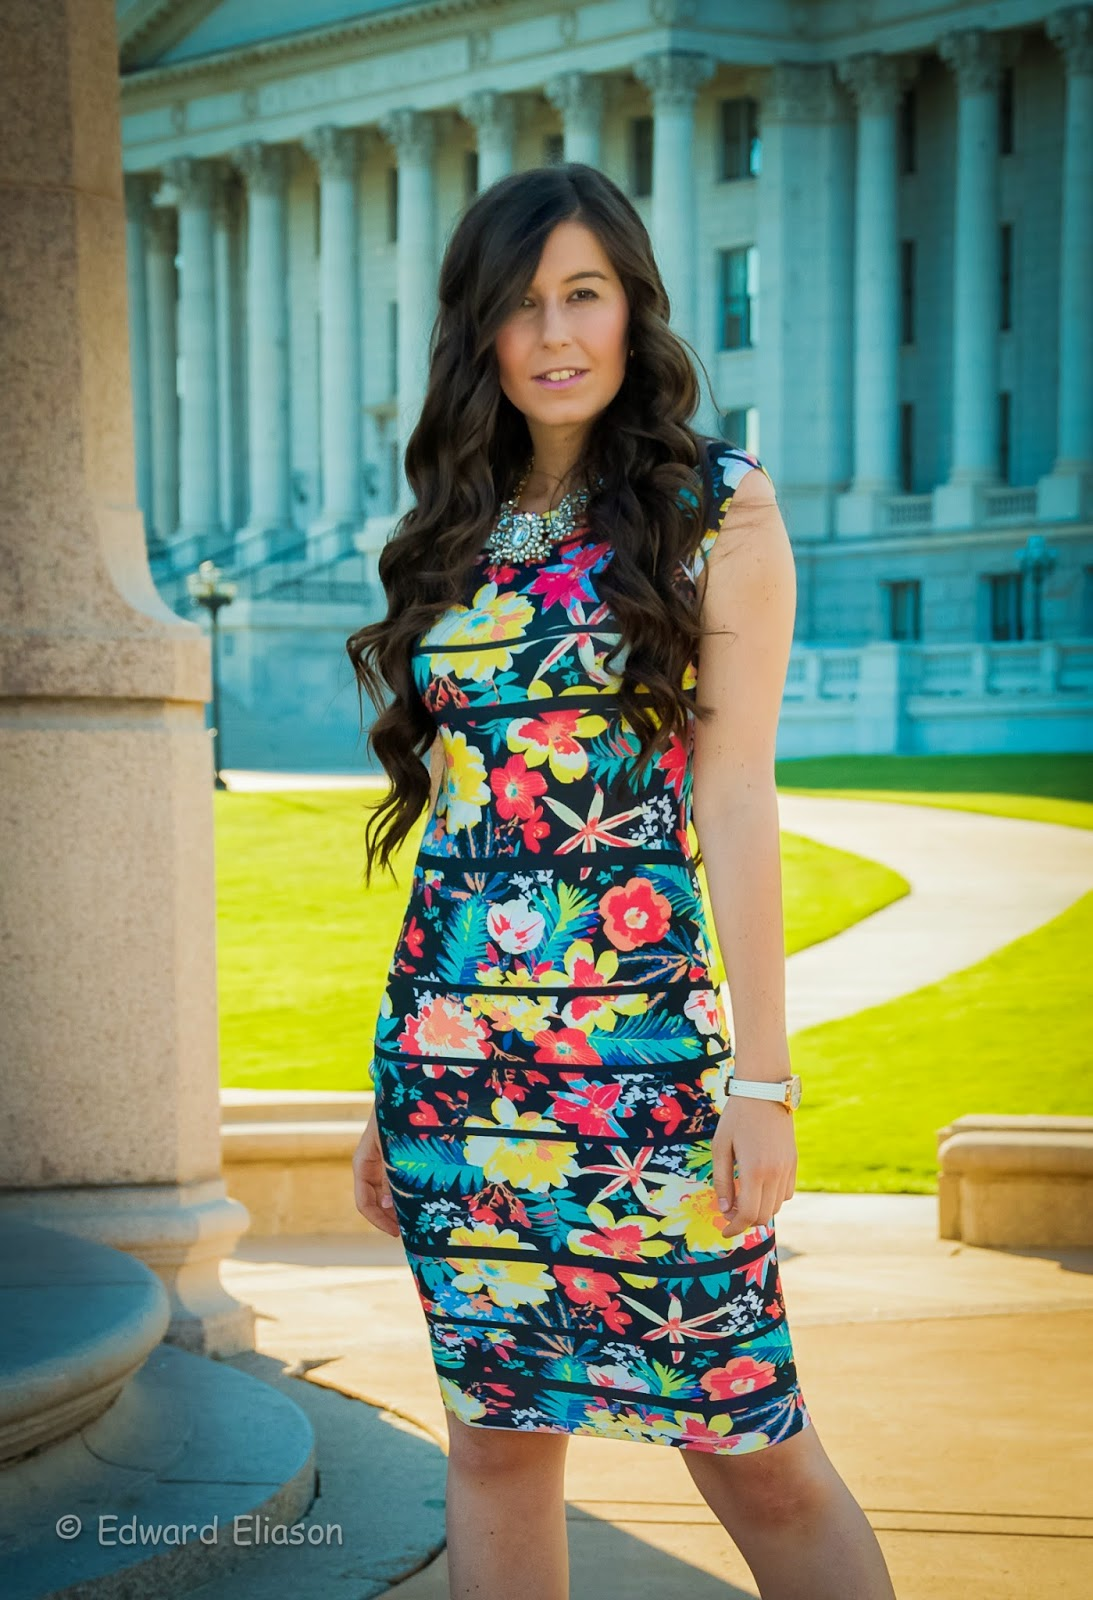 salt lake city, salt lake city capitol, capitol building, floral bodycon dress, bodycon dress, floral dress, pink pumps, amiclubwear, klaus kobec, watch,